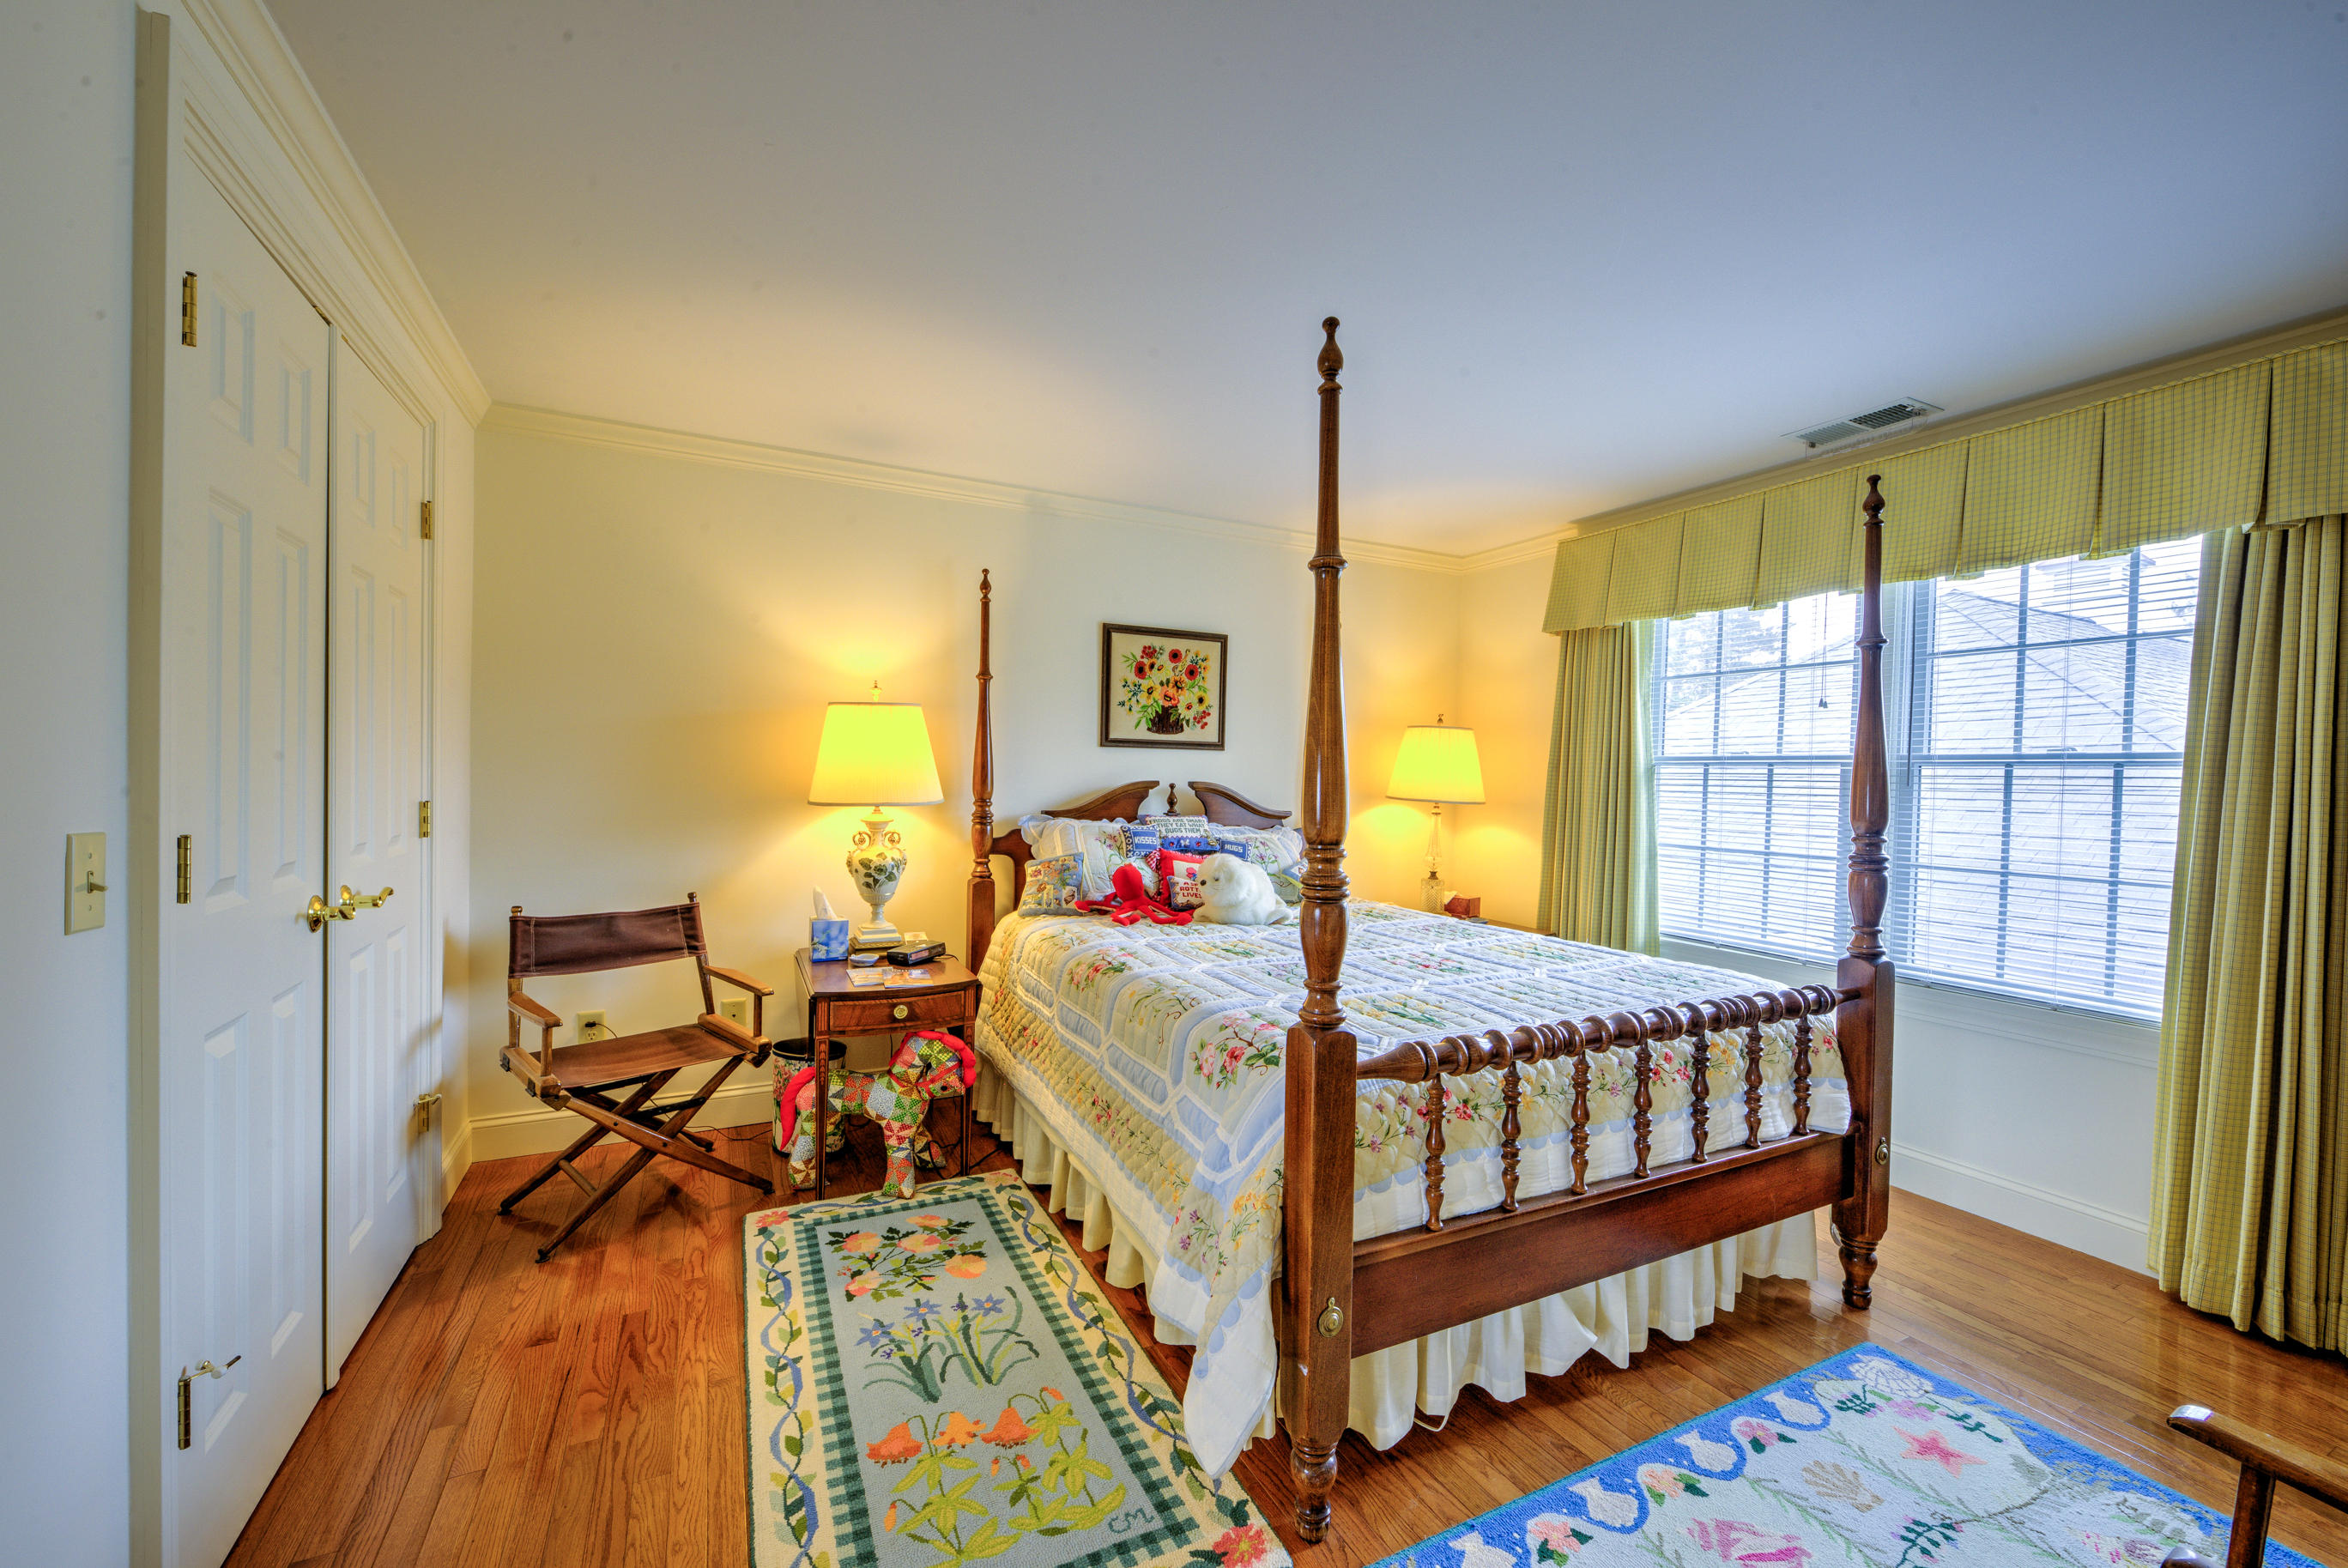 617 Fox Hill Road, Chatham, Massachusetts, 02633, 4 Bedrooms Bedrooms, ,7 BathroomsBathrooms,Residential,For Sale,617 Fox Hill Road,22001417